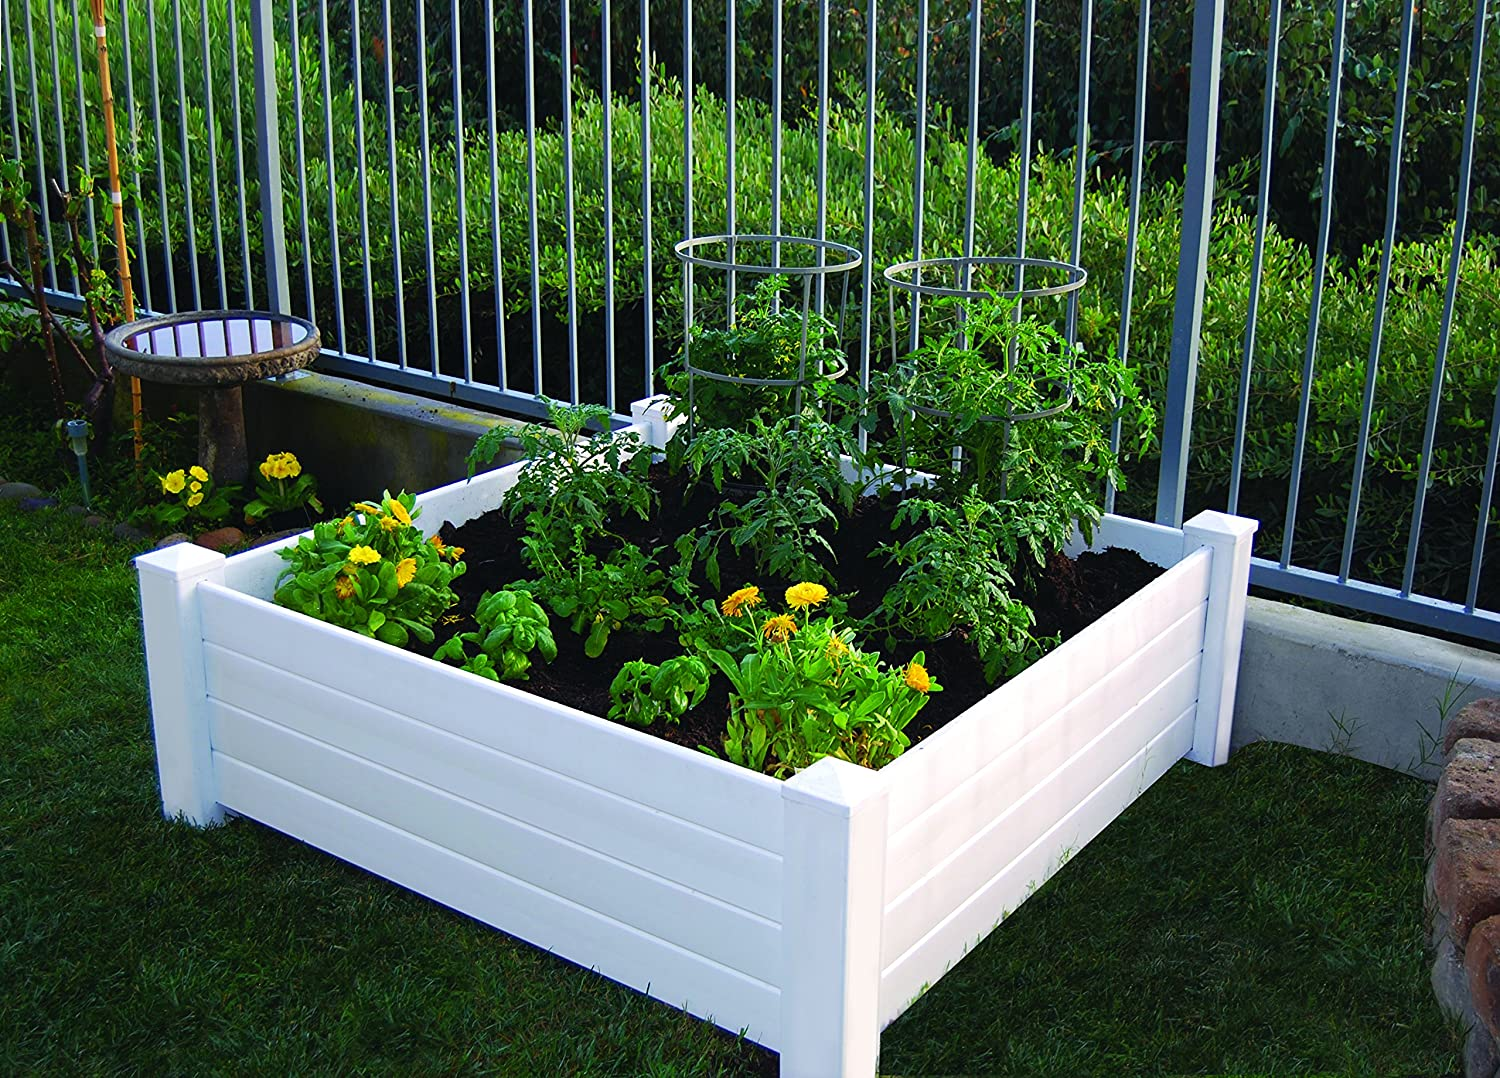 Amazon.com : NuVue Products Raised 48 By 48 By 15 Inch Garden Box Kit,  Extra Tall, White : Metal Pots : Garden U0026 Outdoor